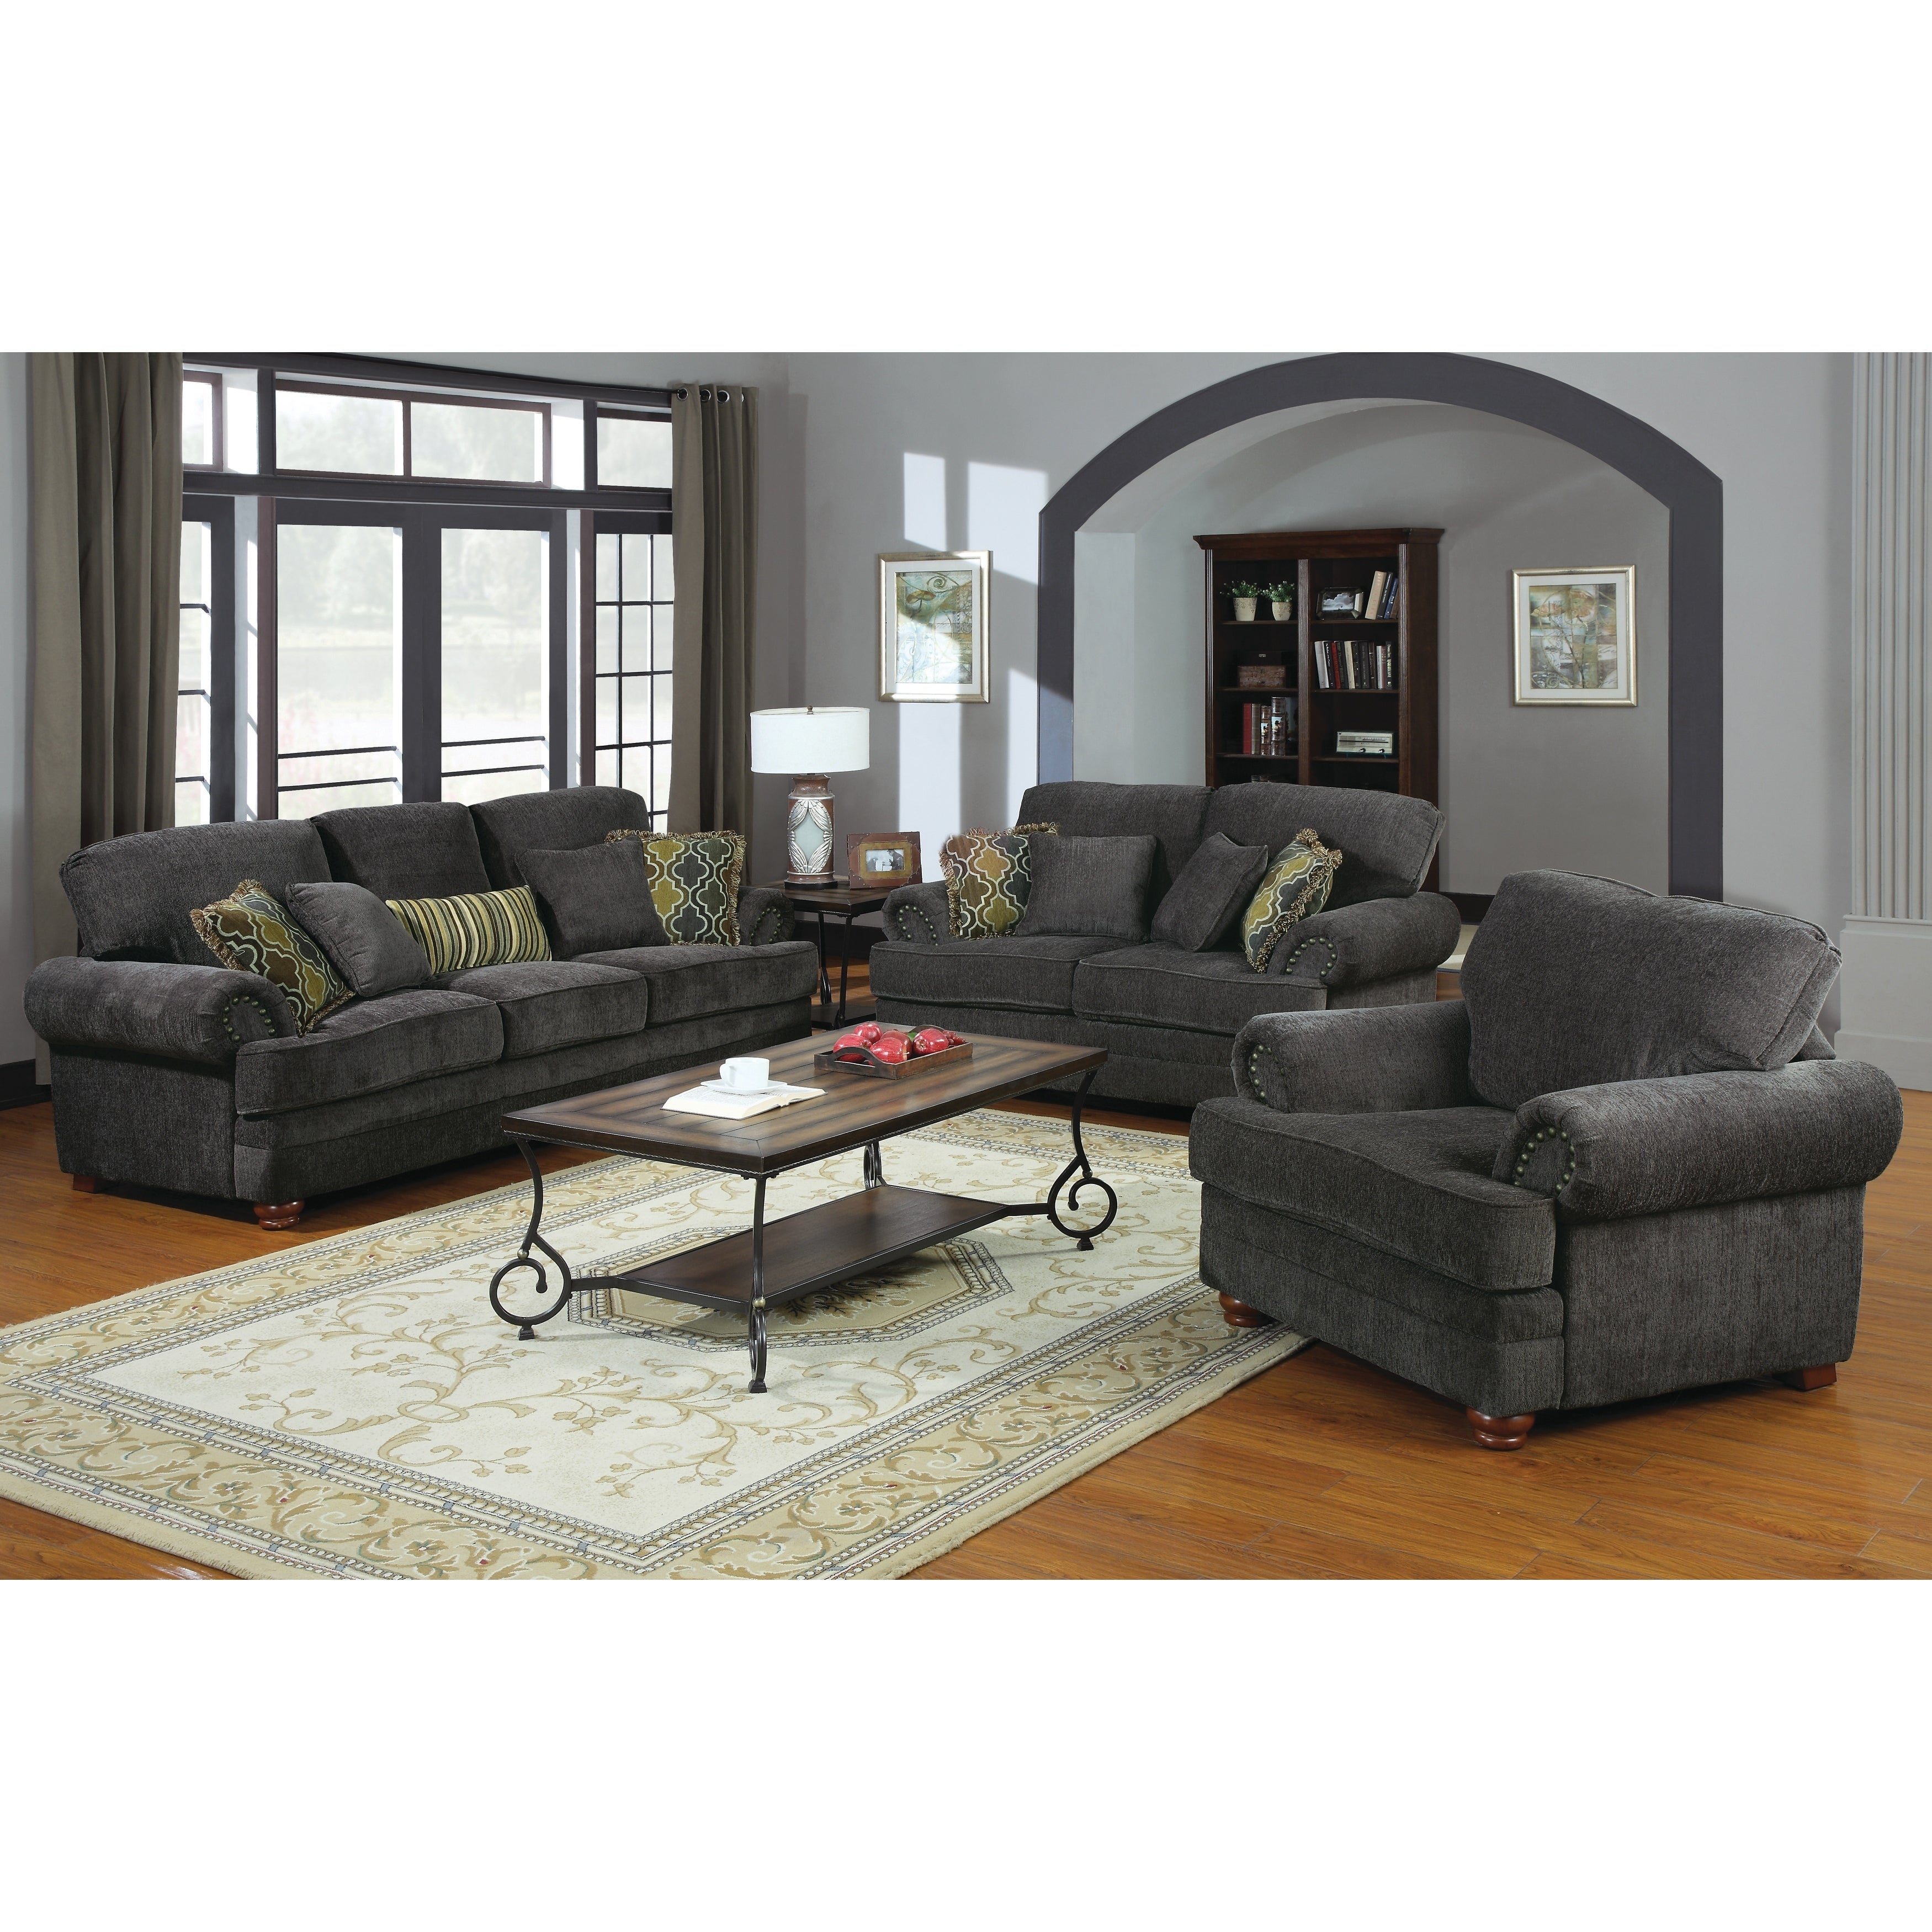 Latitude Run Kaye 3 Piece Living Room Set Latitude Run Upholstery: Black  from Wayfair North America | Martha Stewart